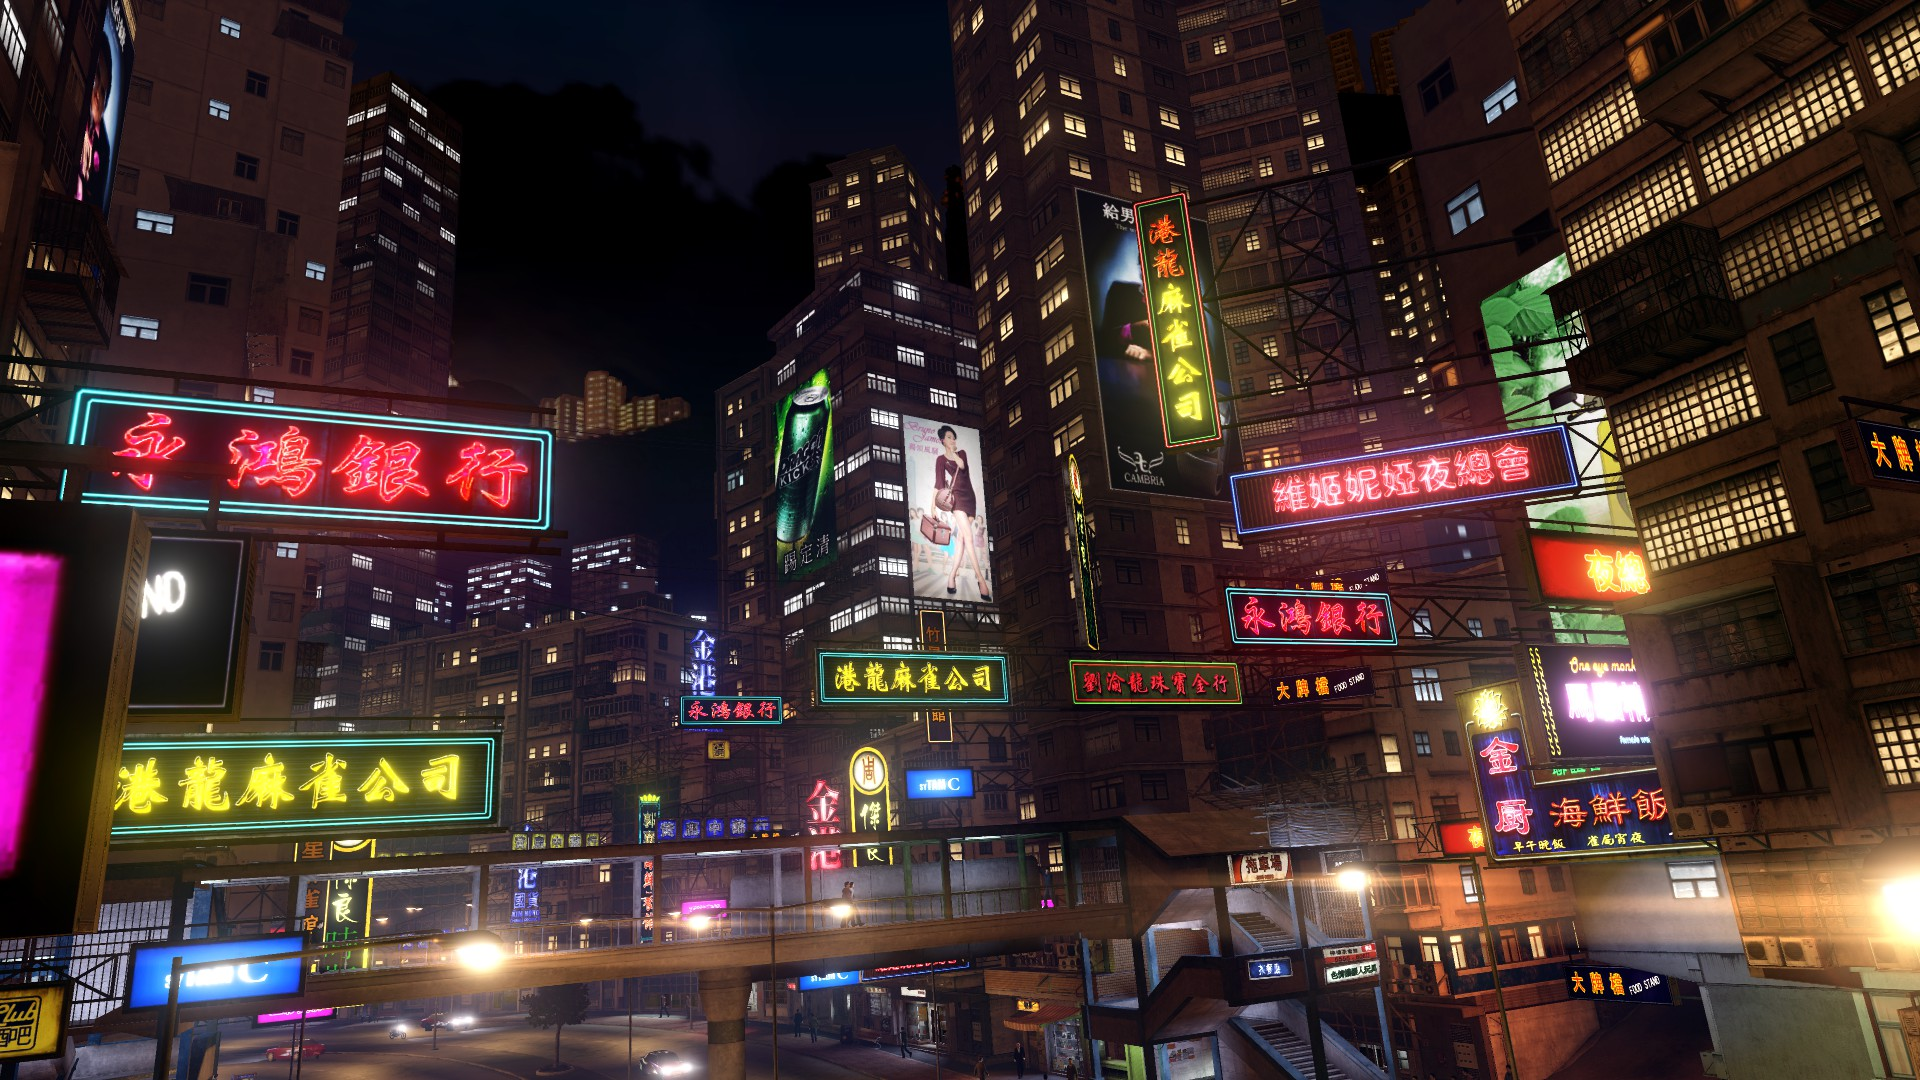 Pc Gamer Sleeping Dogs Review